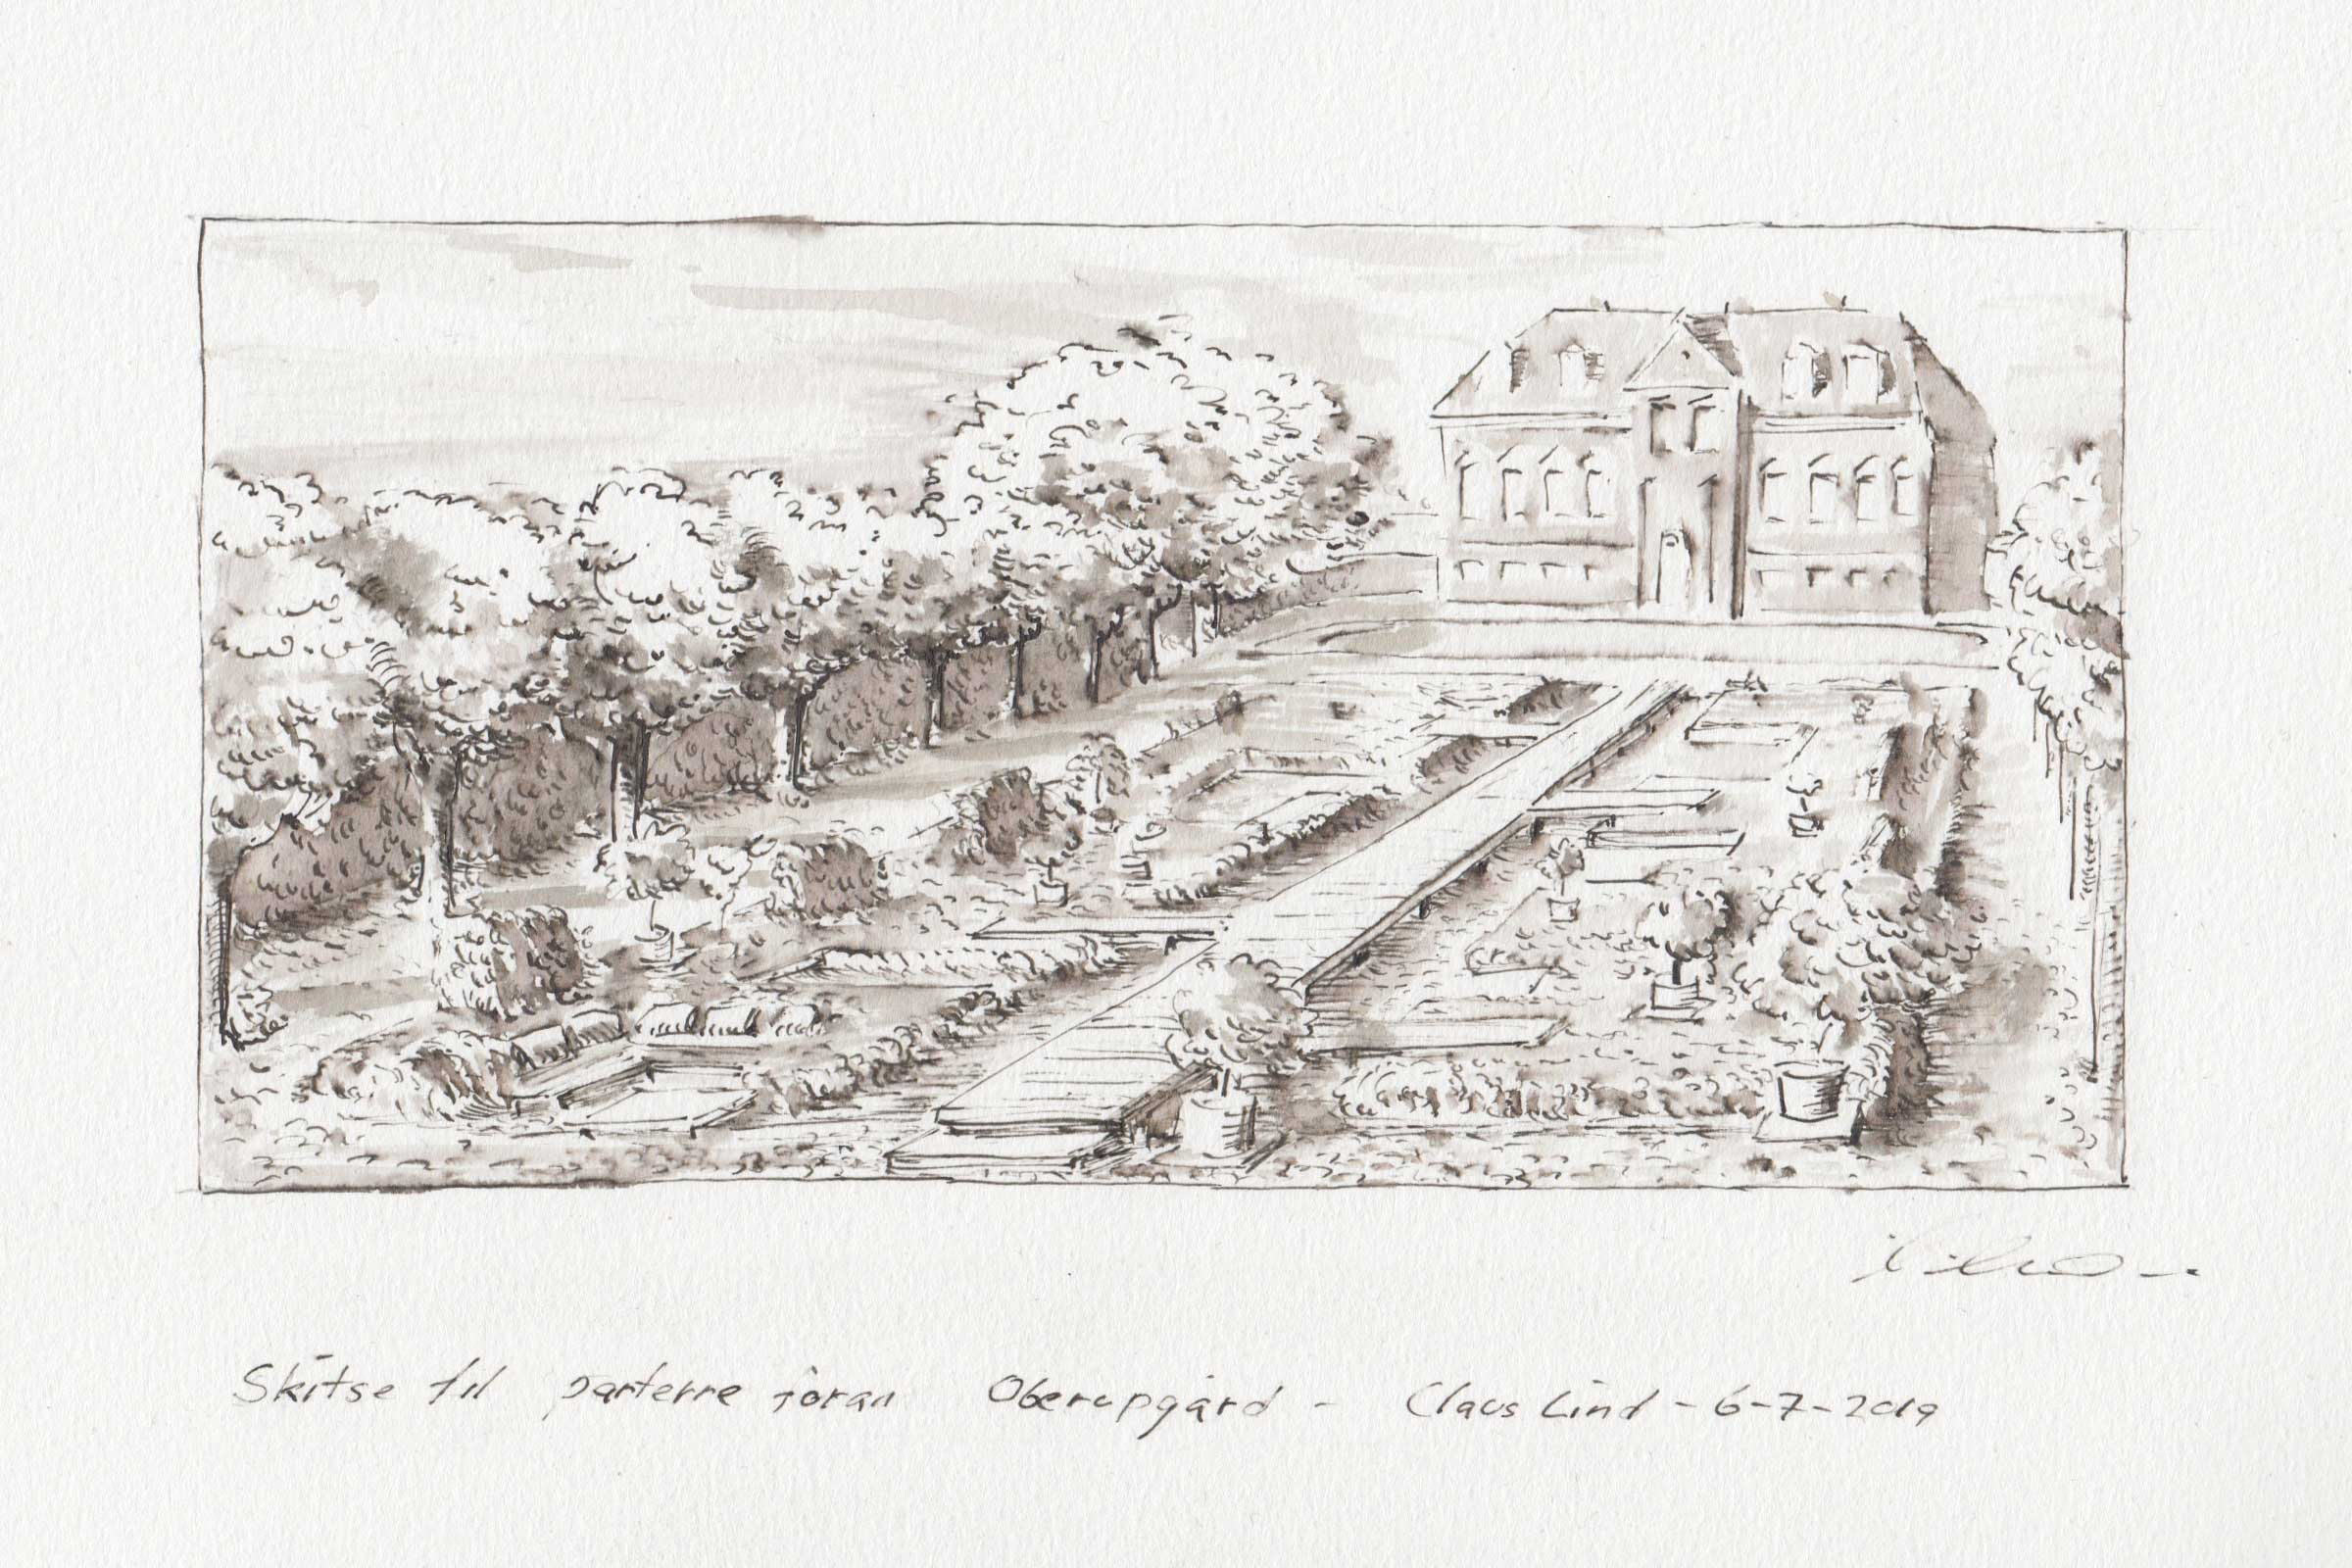 claus lind © manor park architecture sketches ivy bridge oberupgaard garden